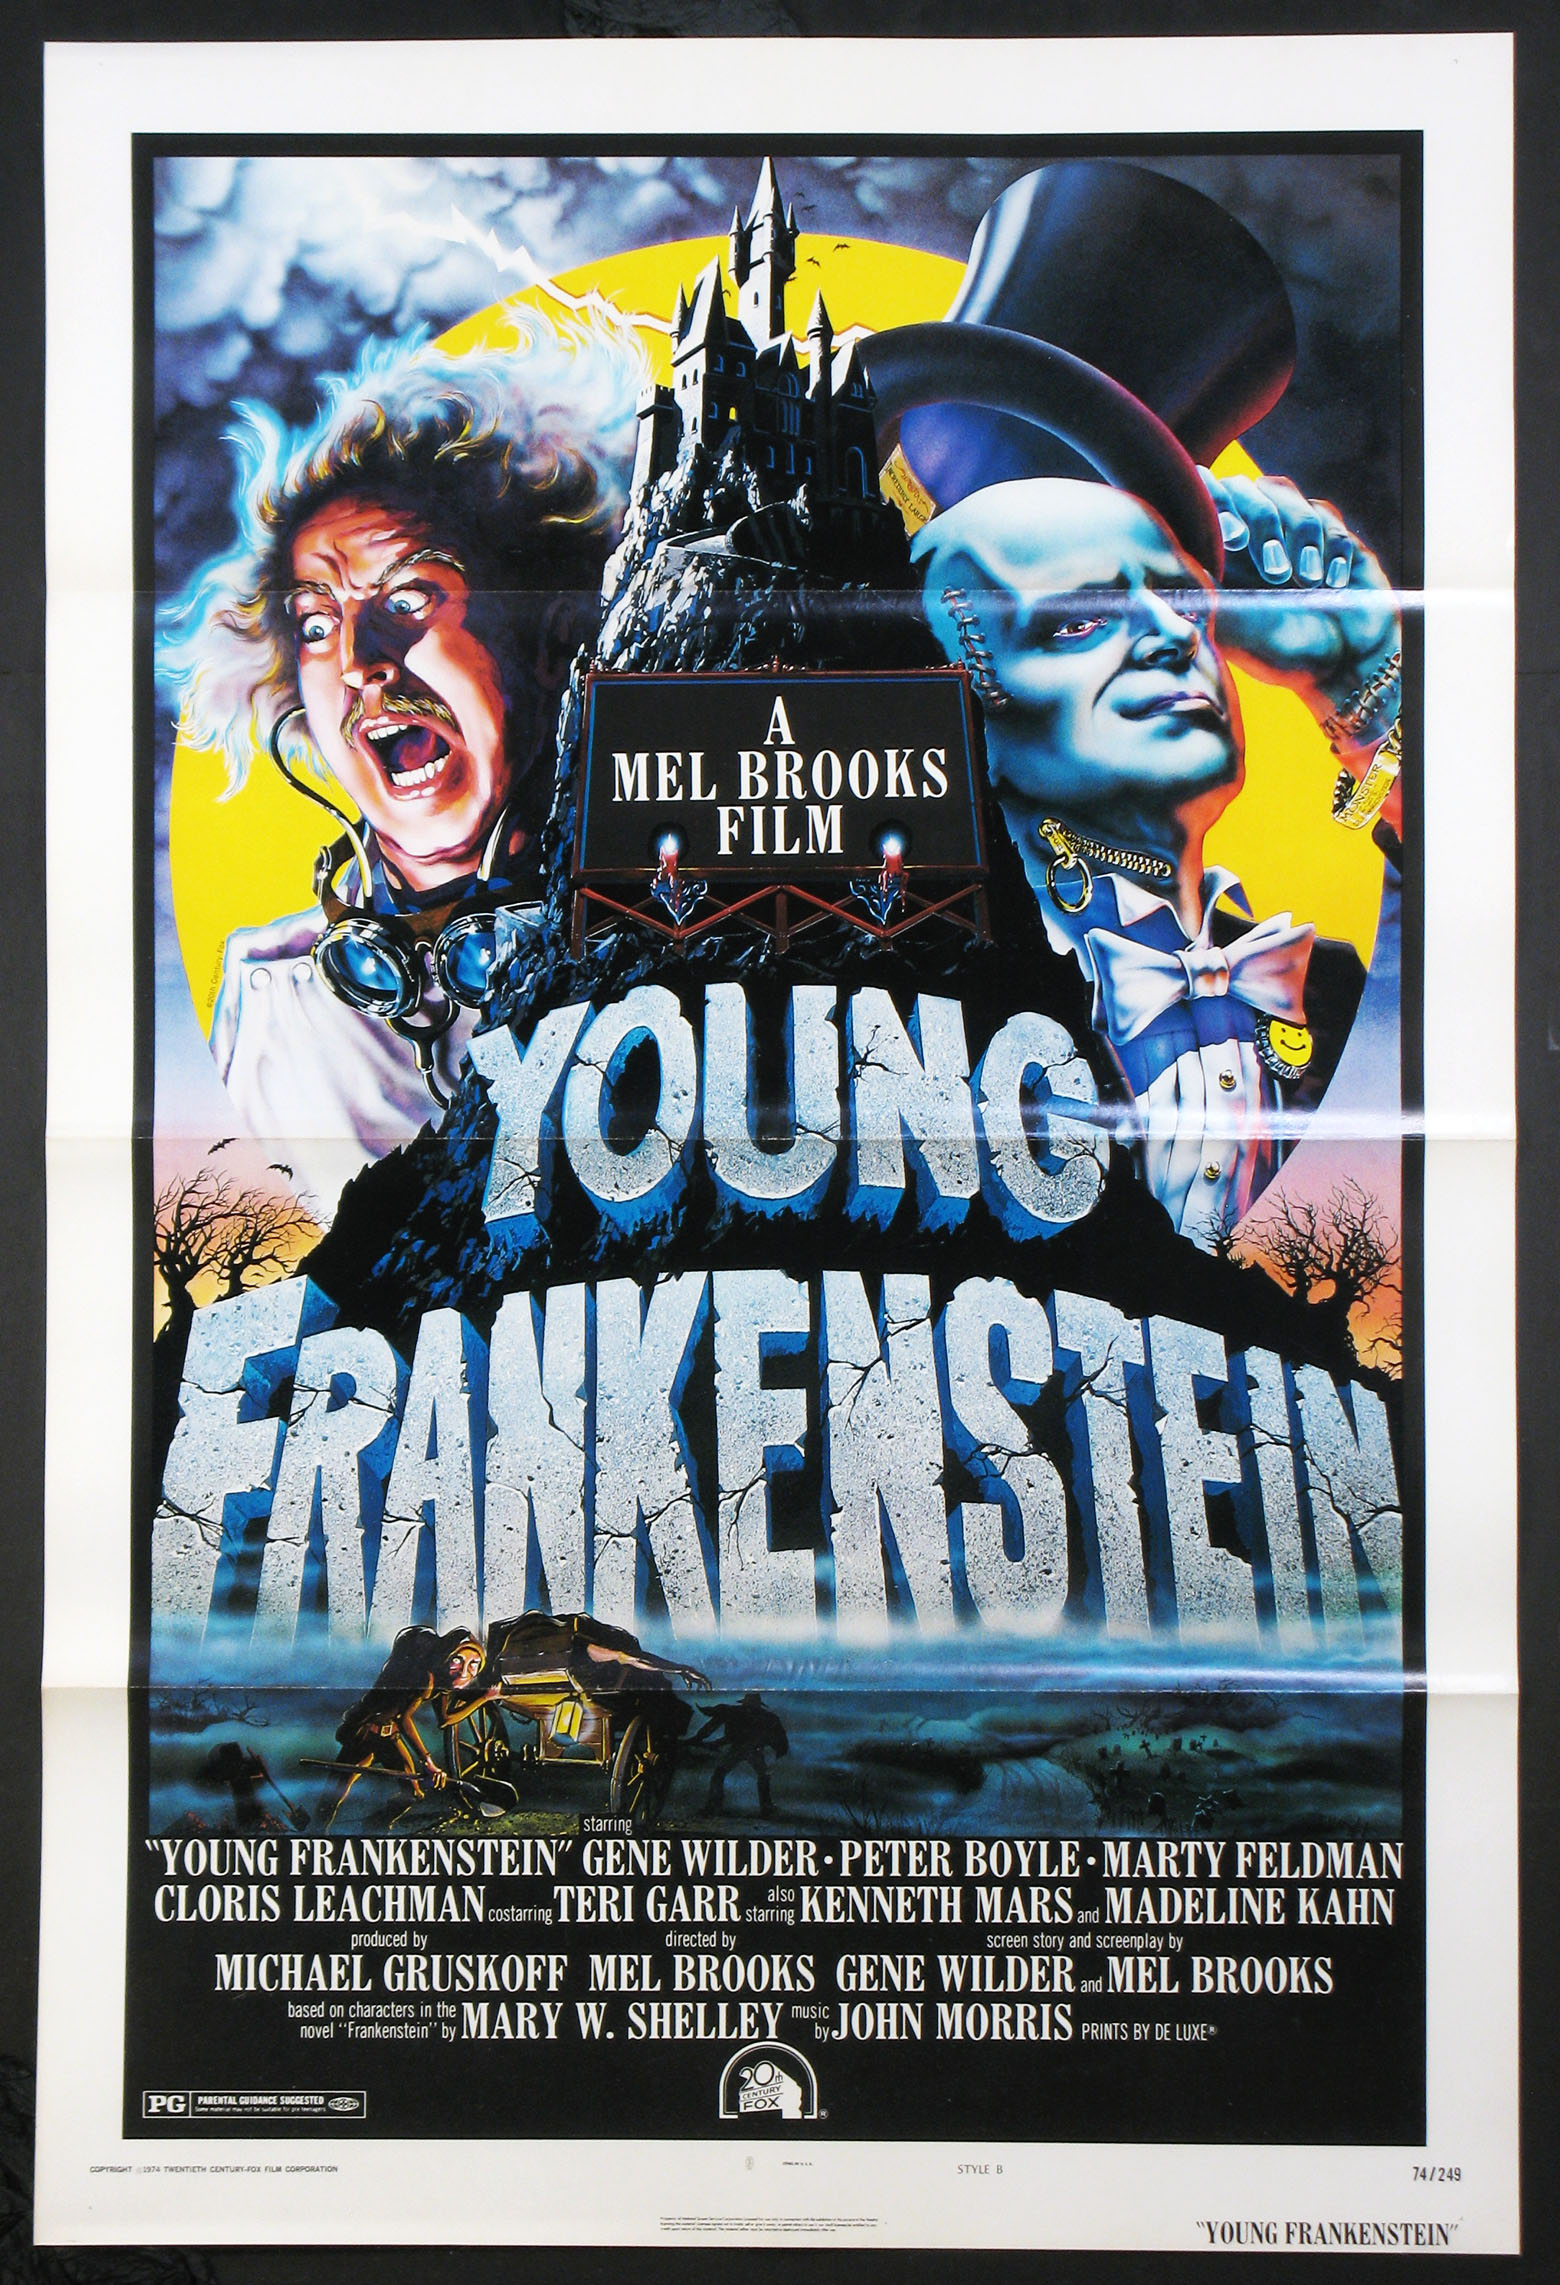 YOUNG FRANKENSTEIN @ FilmPosters.com